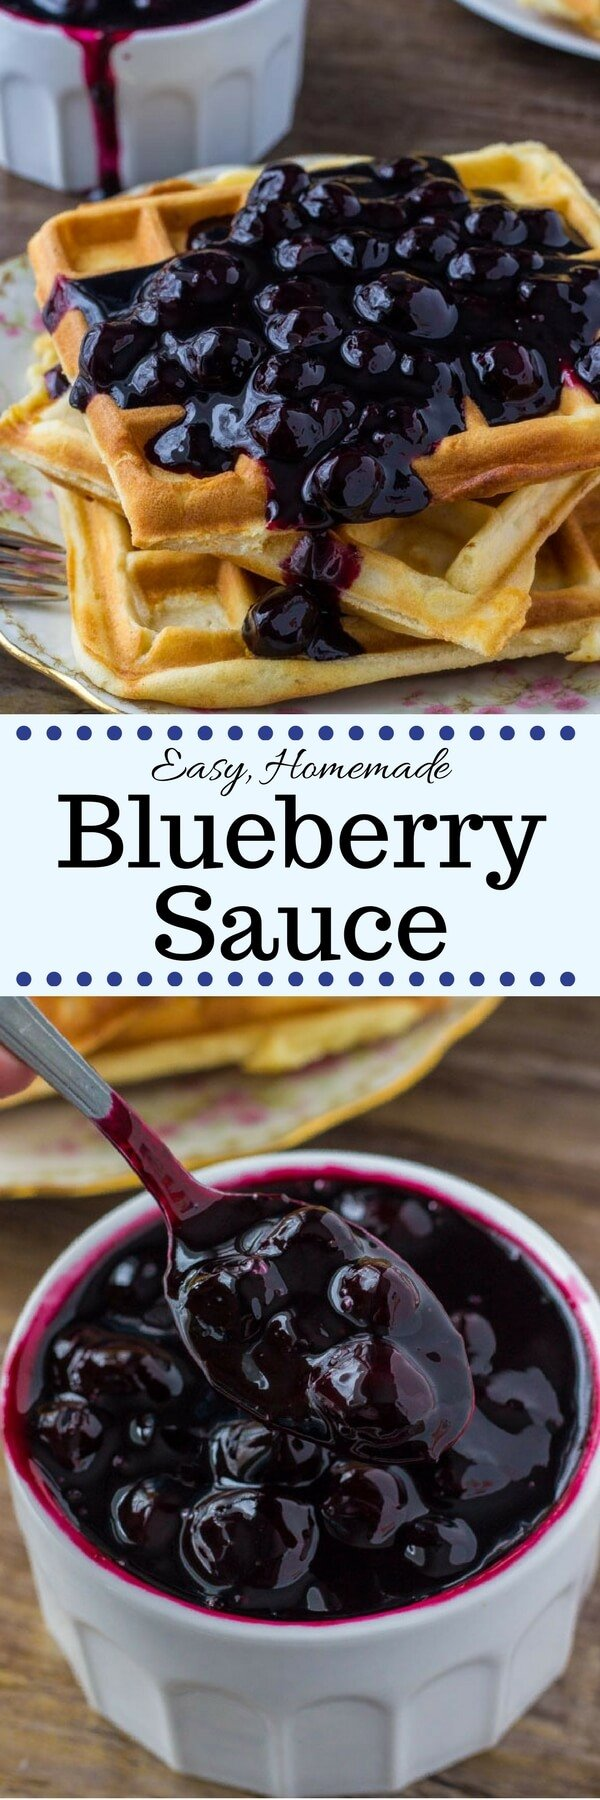 Homemade blueberry sauce is not too sweet and bursting with berries. Make it with fresh or frozen berries - then top in on pancakes, cheesecake, waffles or ice cream! #icecreamtopping #blueberrysauce #blueberries #pancakes #waffles #icecream